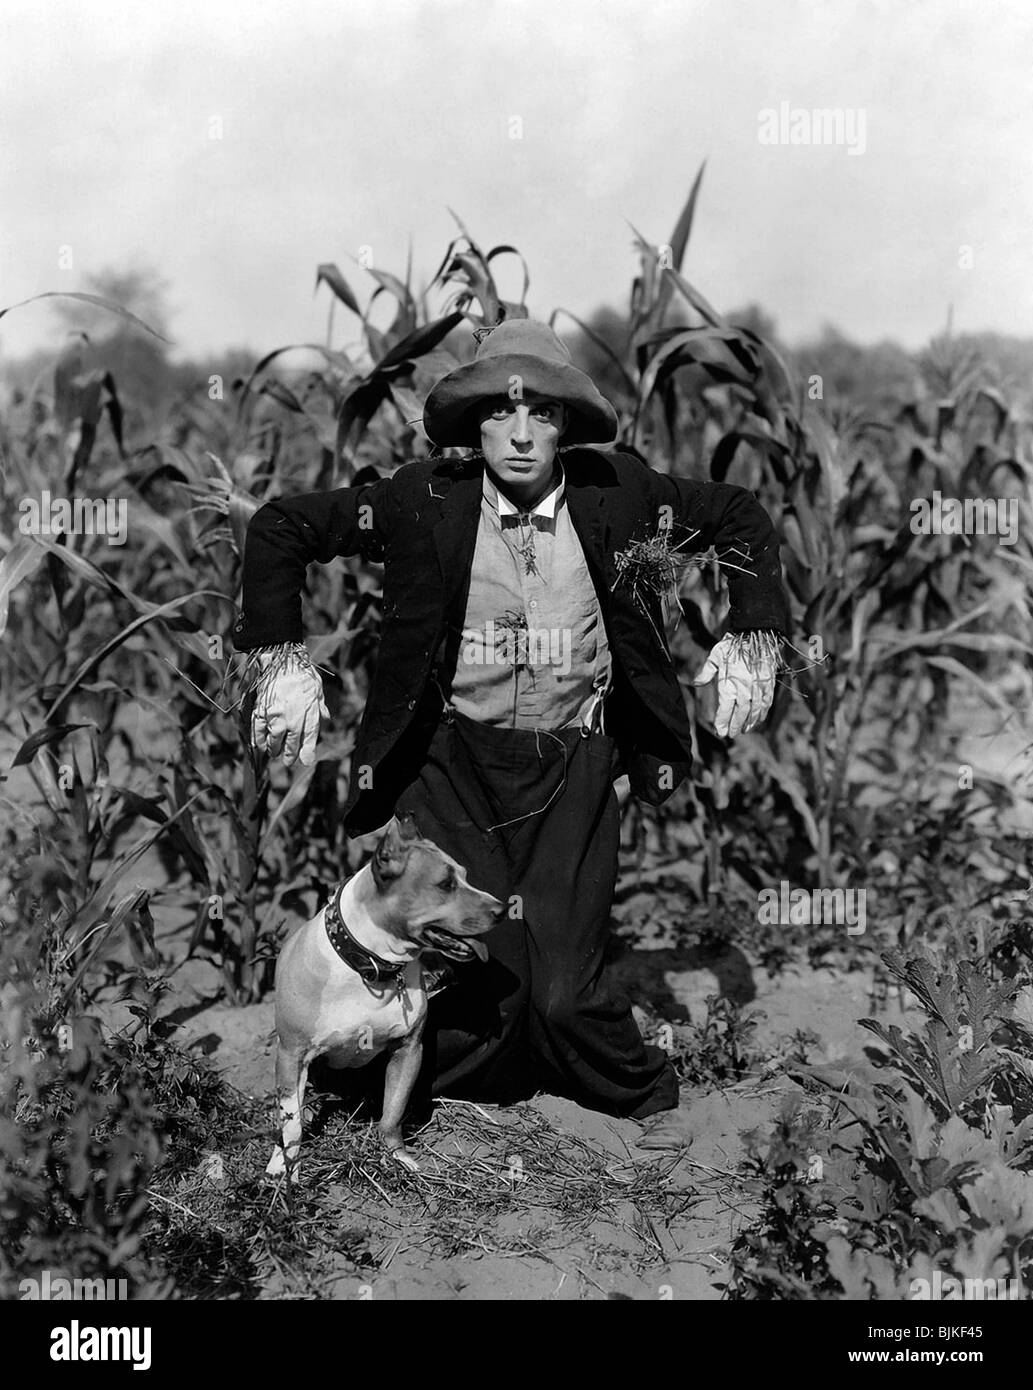 THE SCARECROW (1920) BUSTER KEATON EDWARD F CLINE (DIR) 001 - Stock Image